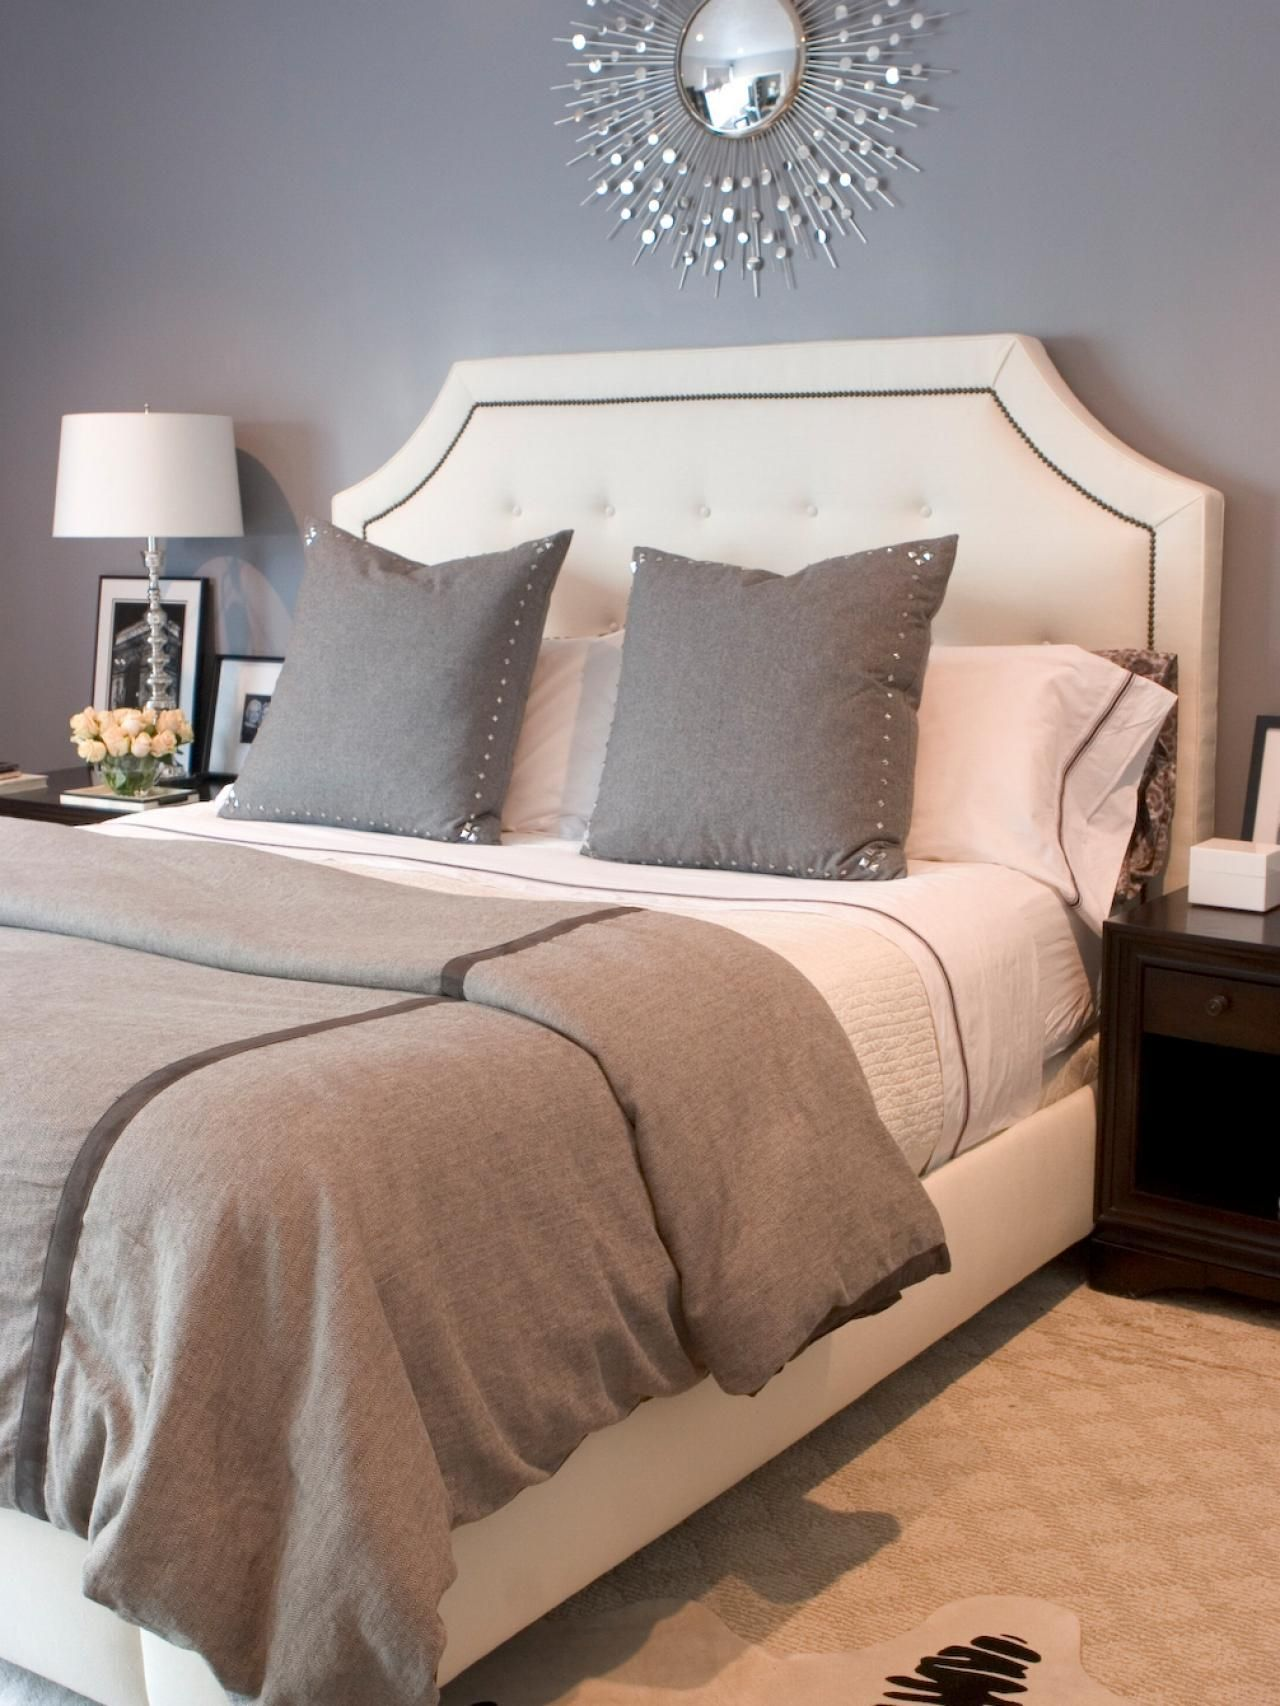 Timeless Gray Bedroom With Sunburst Mirror Grey Bedroom Design White Headboard Bedroom Remodel Bedroom